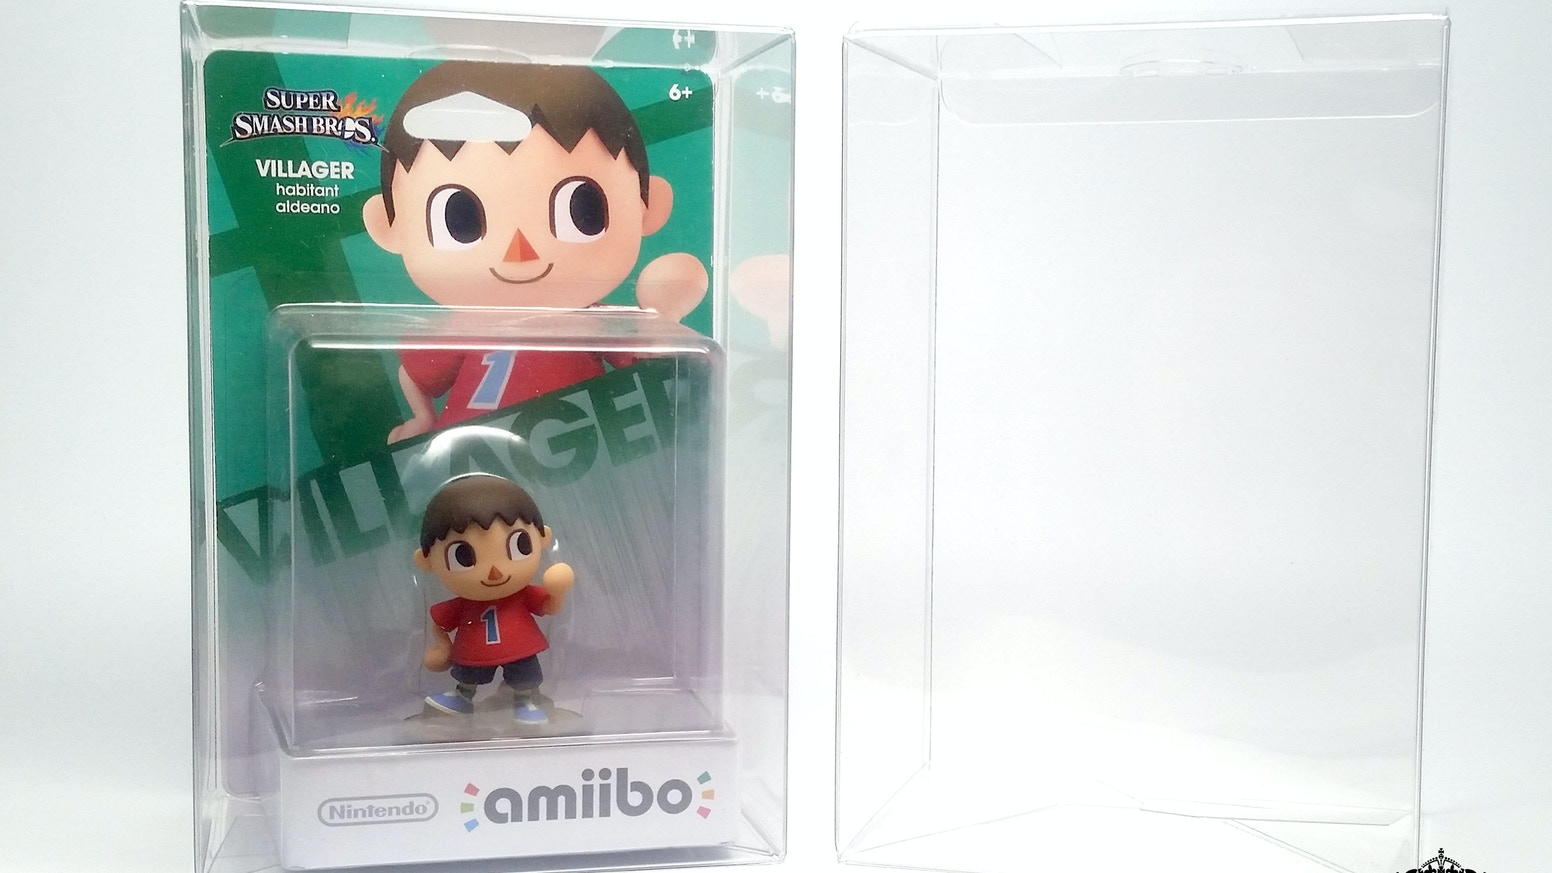 Order now @ www.HighClassRetro.com !!Its a fact that MANY Amiibos are already RARE, SOLD OUT and CRAZY hard to find! We want to help protect your rare and treasured figure.